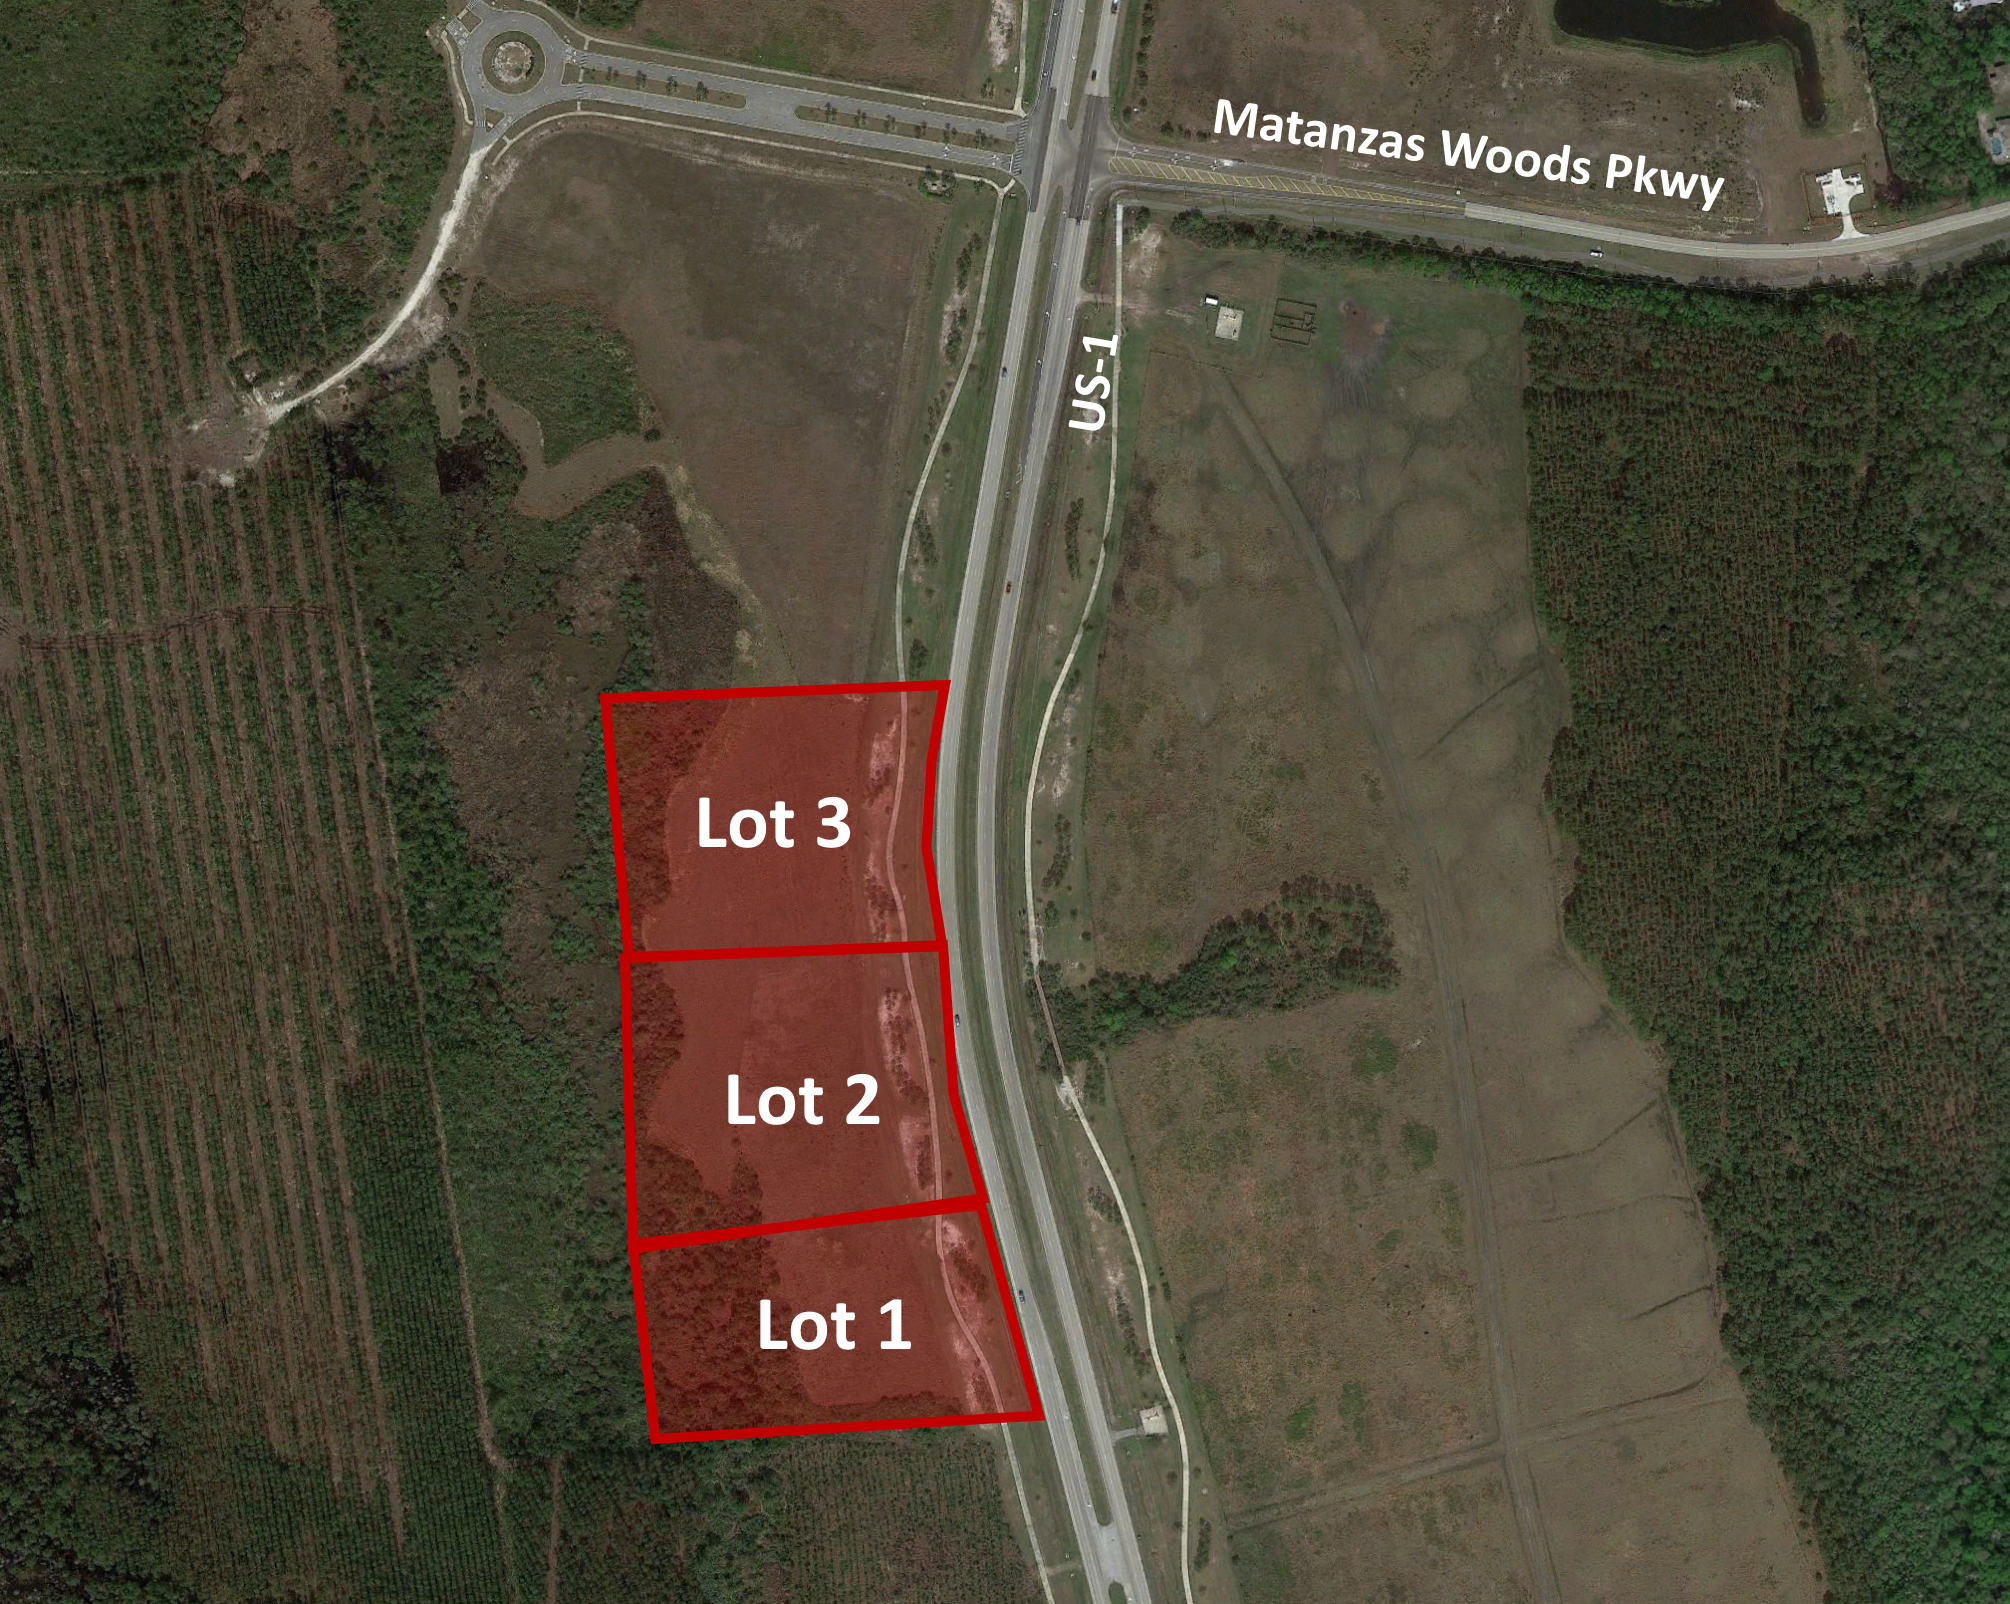 Commercial Lots - Lot 1: 2.4+/- Net Acres Entitled for 12,000sf Commercial$350,000Lot 2: 3.5+/- Net Acres Entitled for 15,000sf Commercial$440,000Lot 3: 3.5+/- Net Acres Entitled for 16,000sf Commercial$450,000